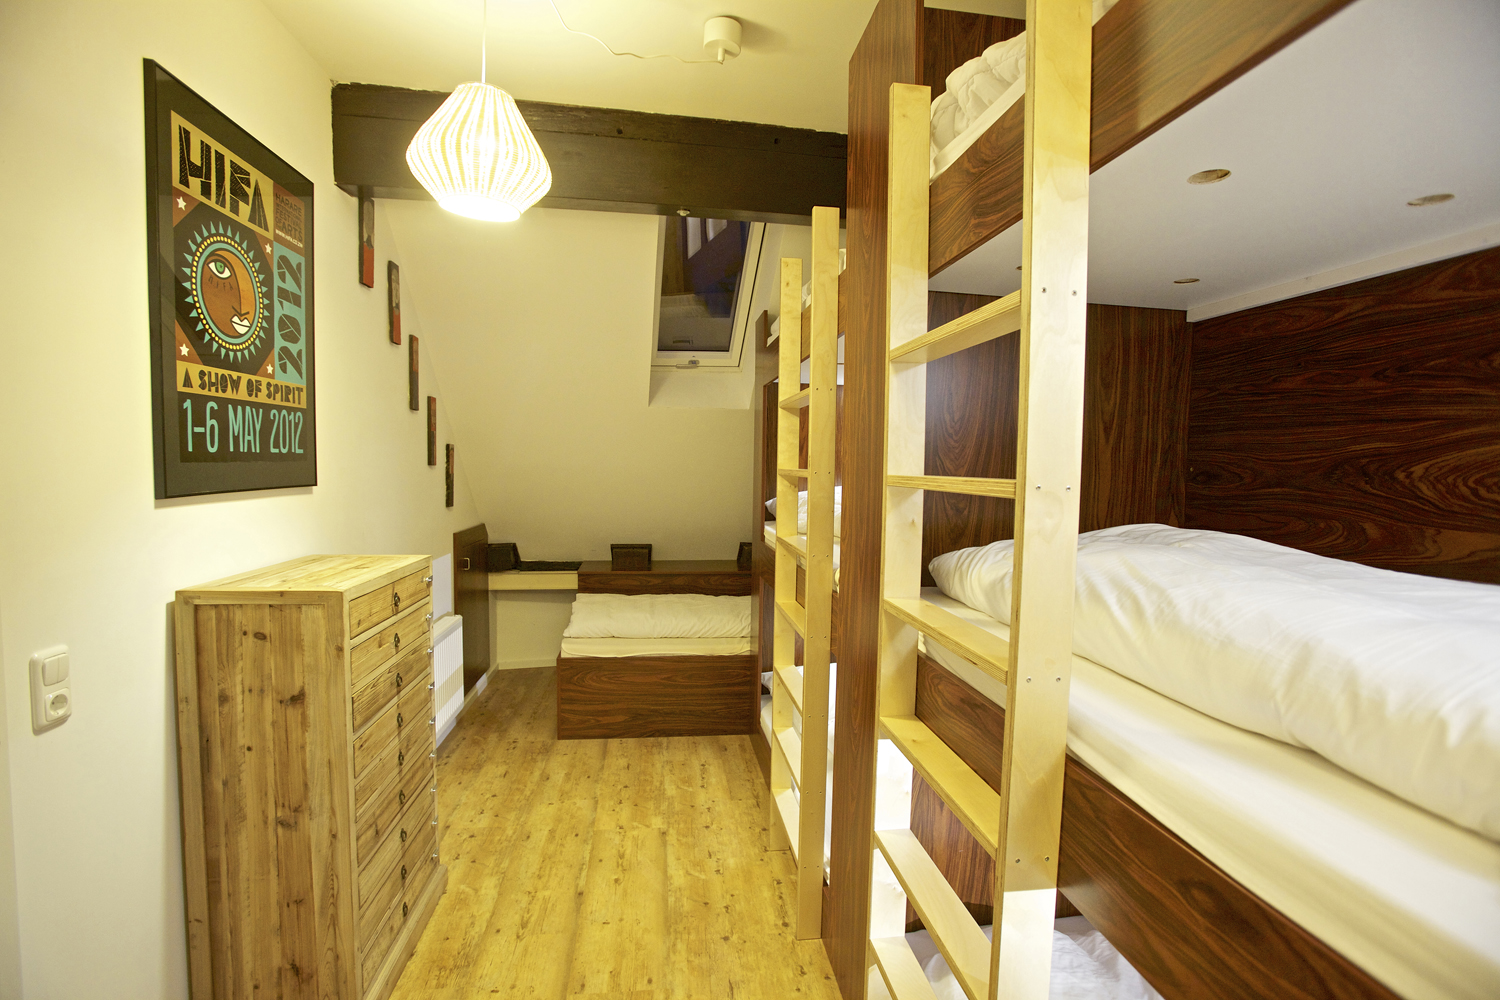 King of Africa 8-Bed Dorm